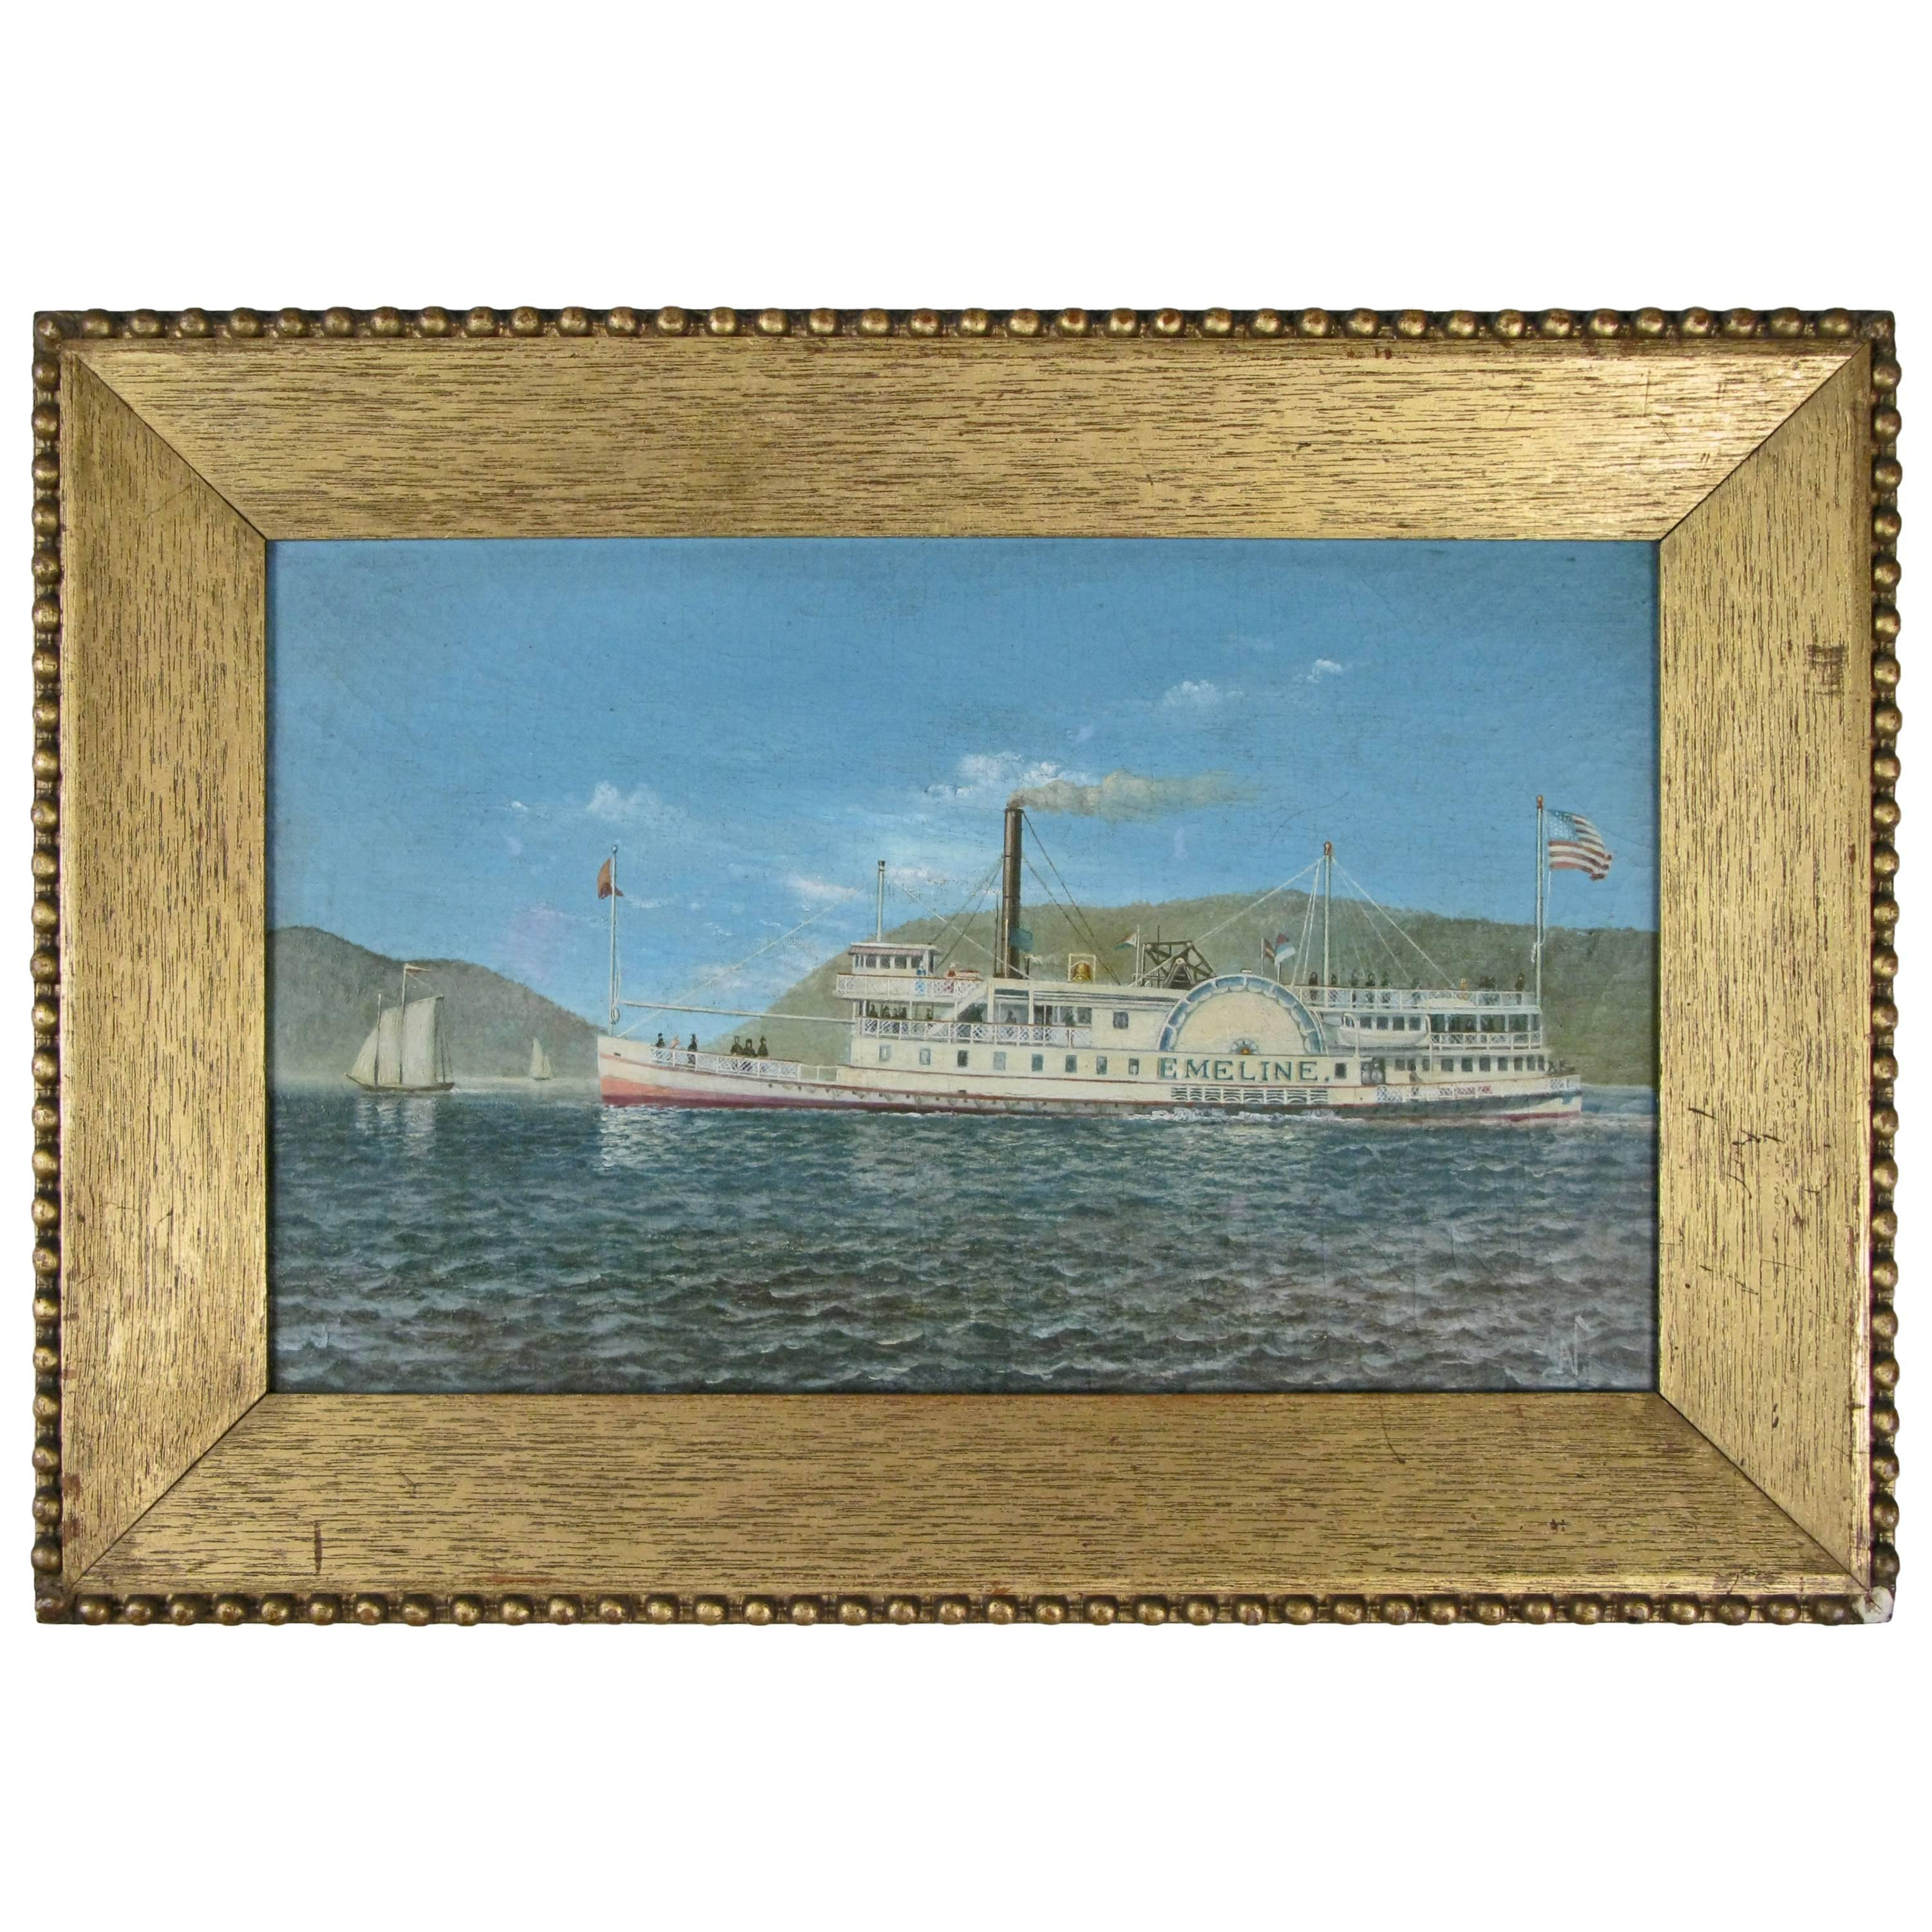 Oil on Canvas Paddle Steamer Painting by Albert Nemethy